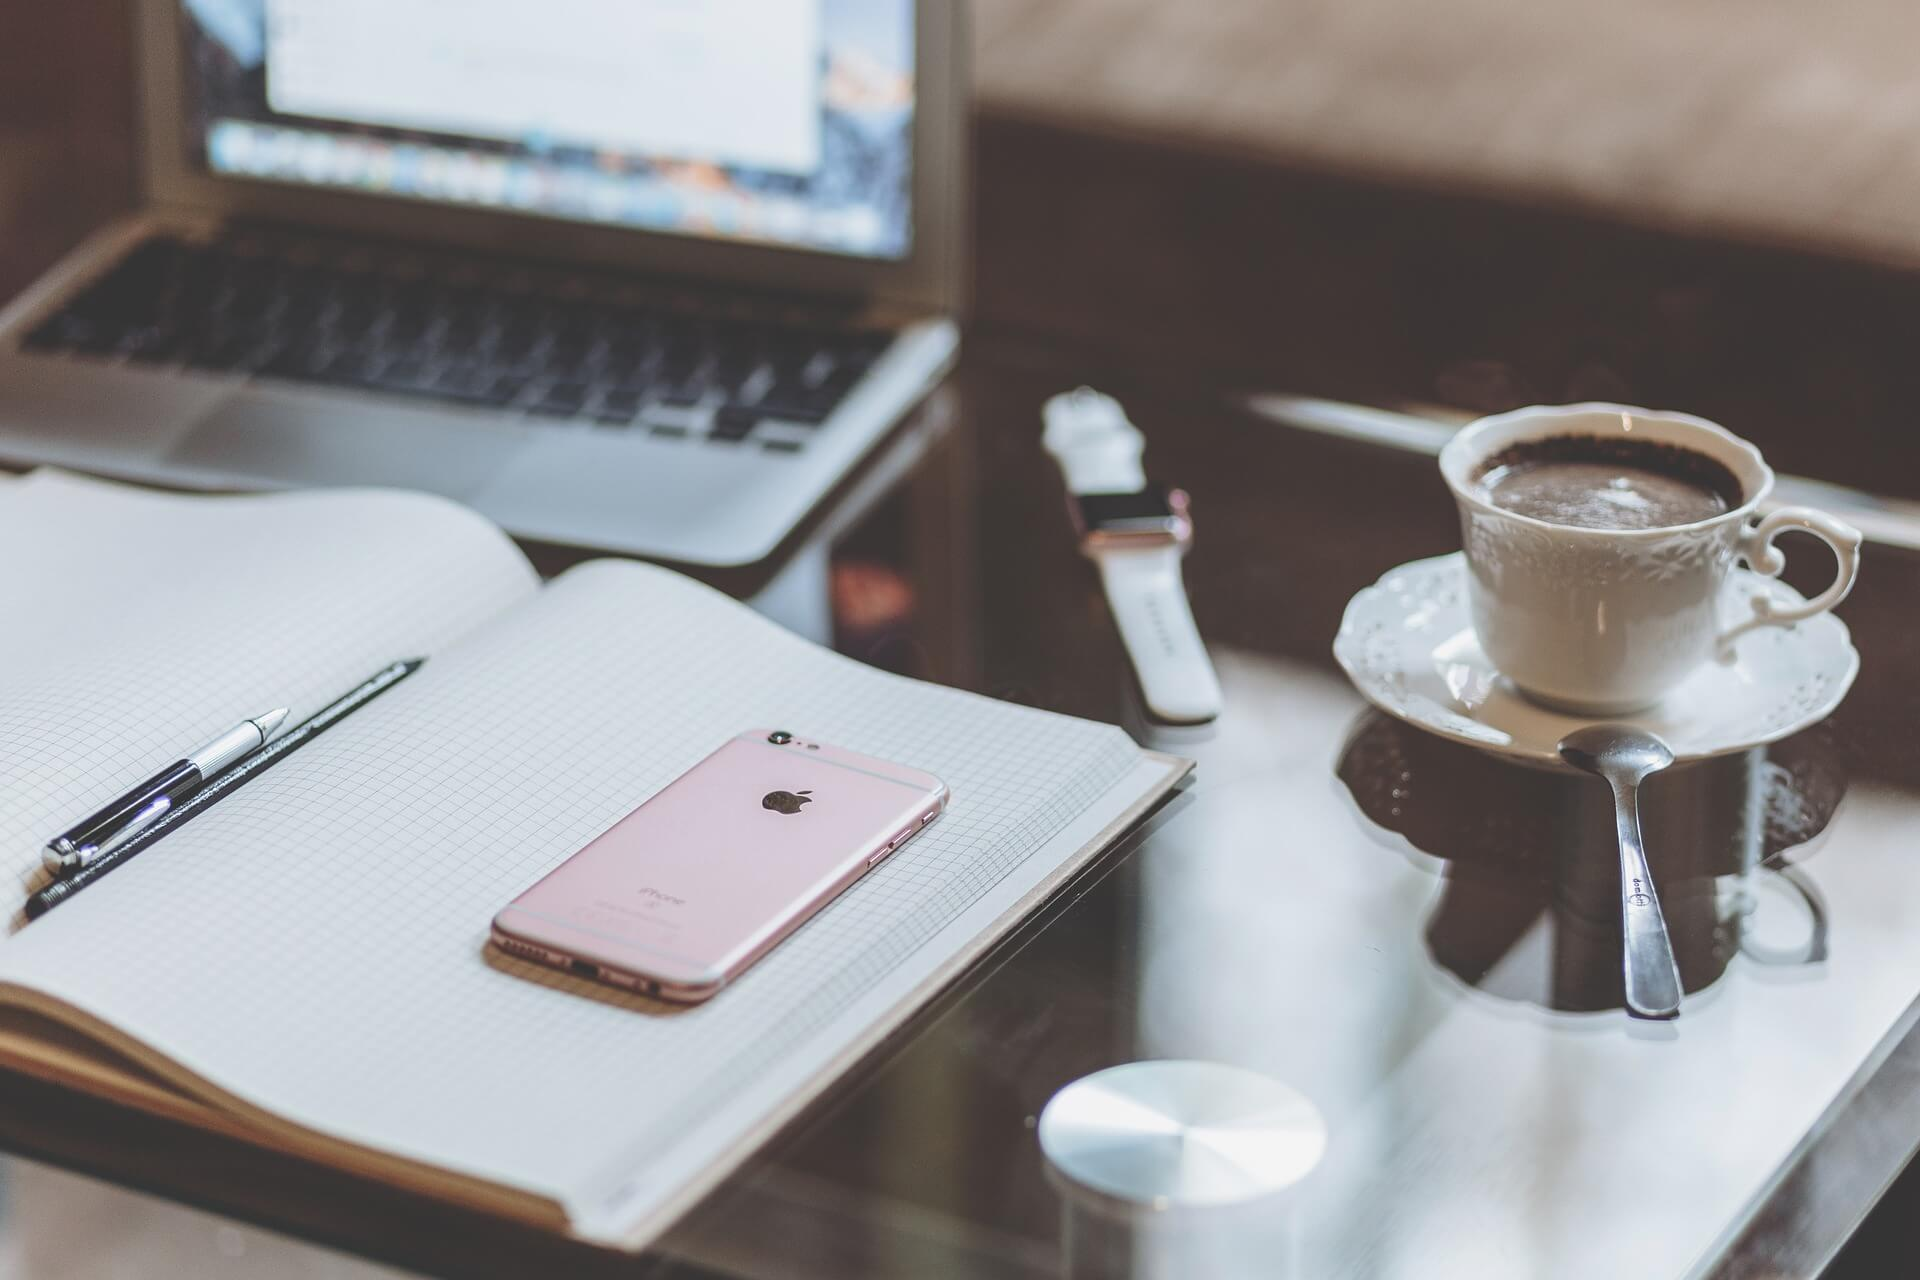 iPhone 2G (2007-2008), Bild: Apple